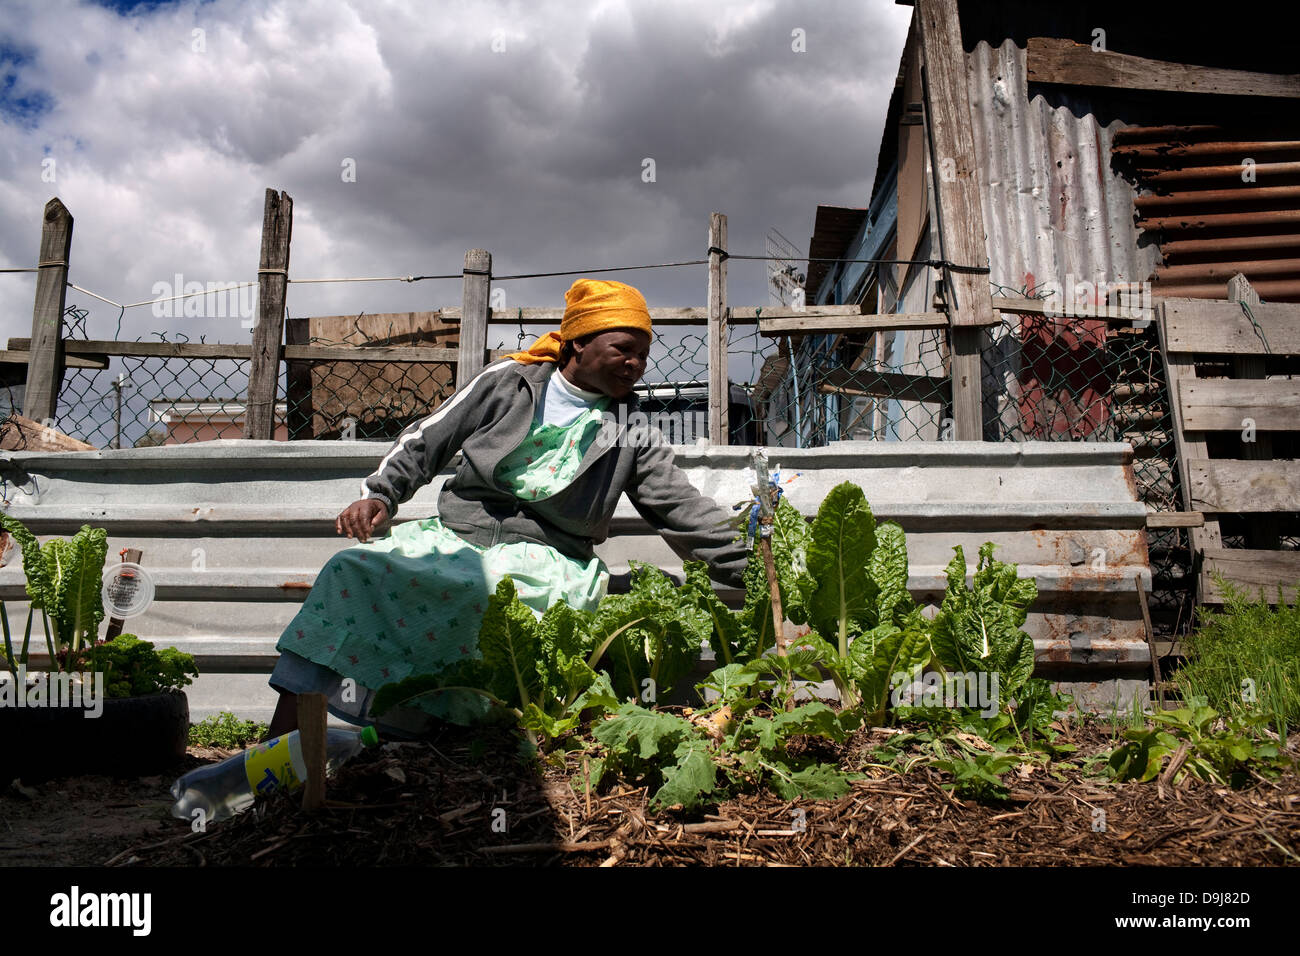 Nomathemsanqa Qhaga completed Soil Life training program 1 year ago She is unemployed She is happy to have been - Stock Image